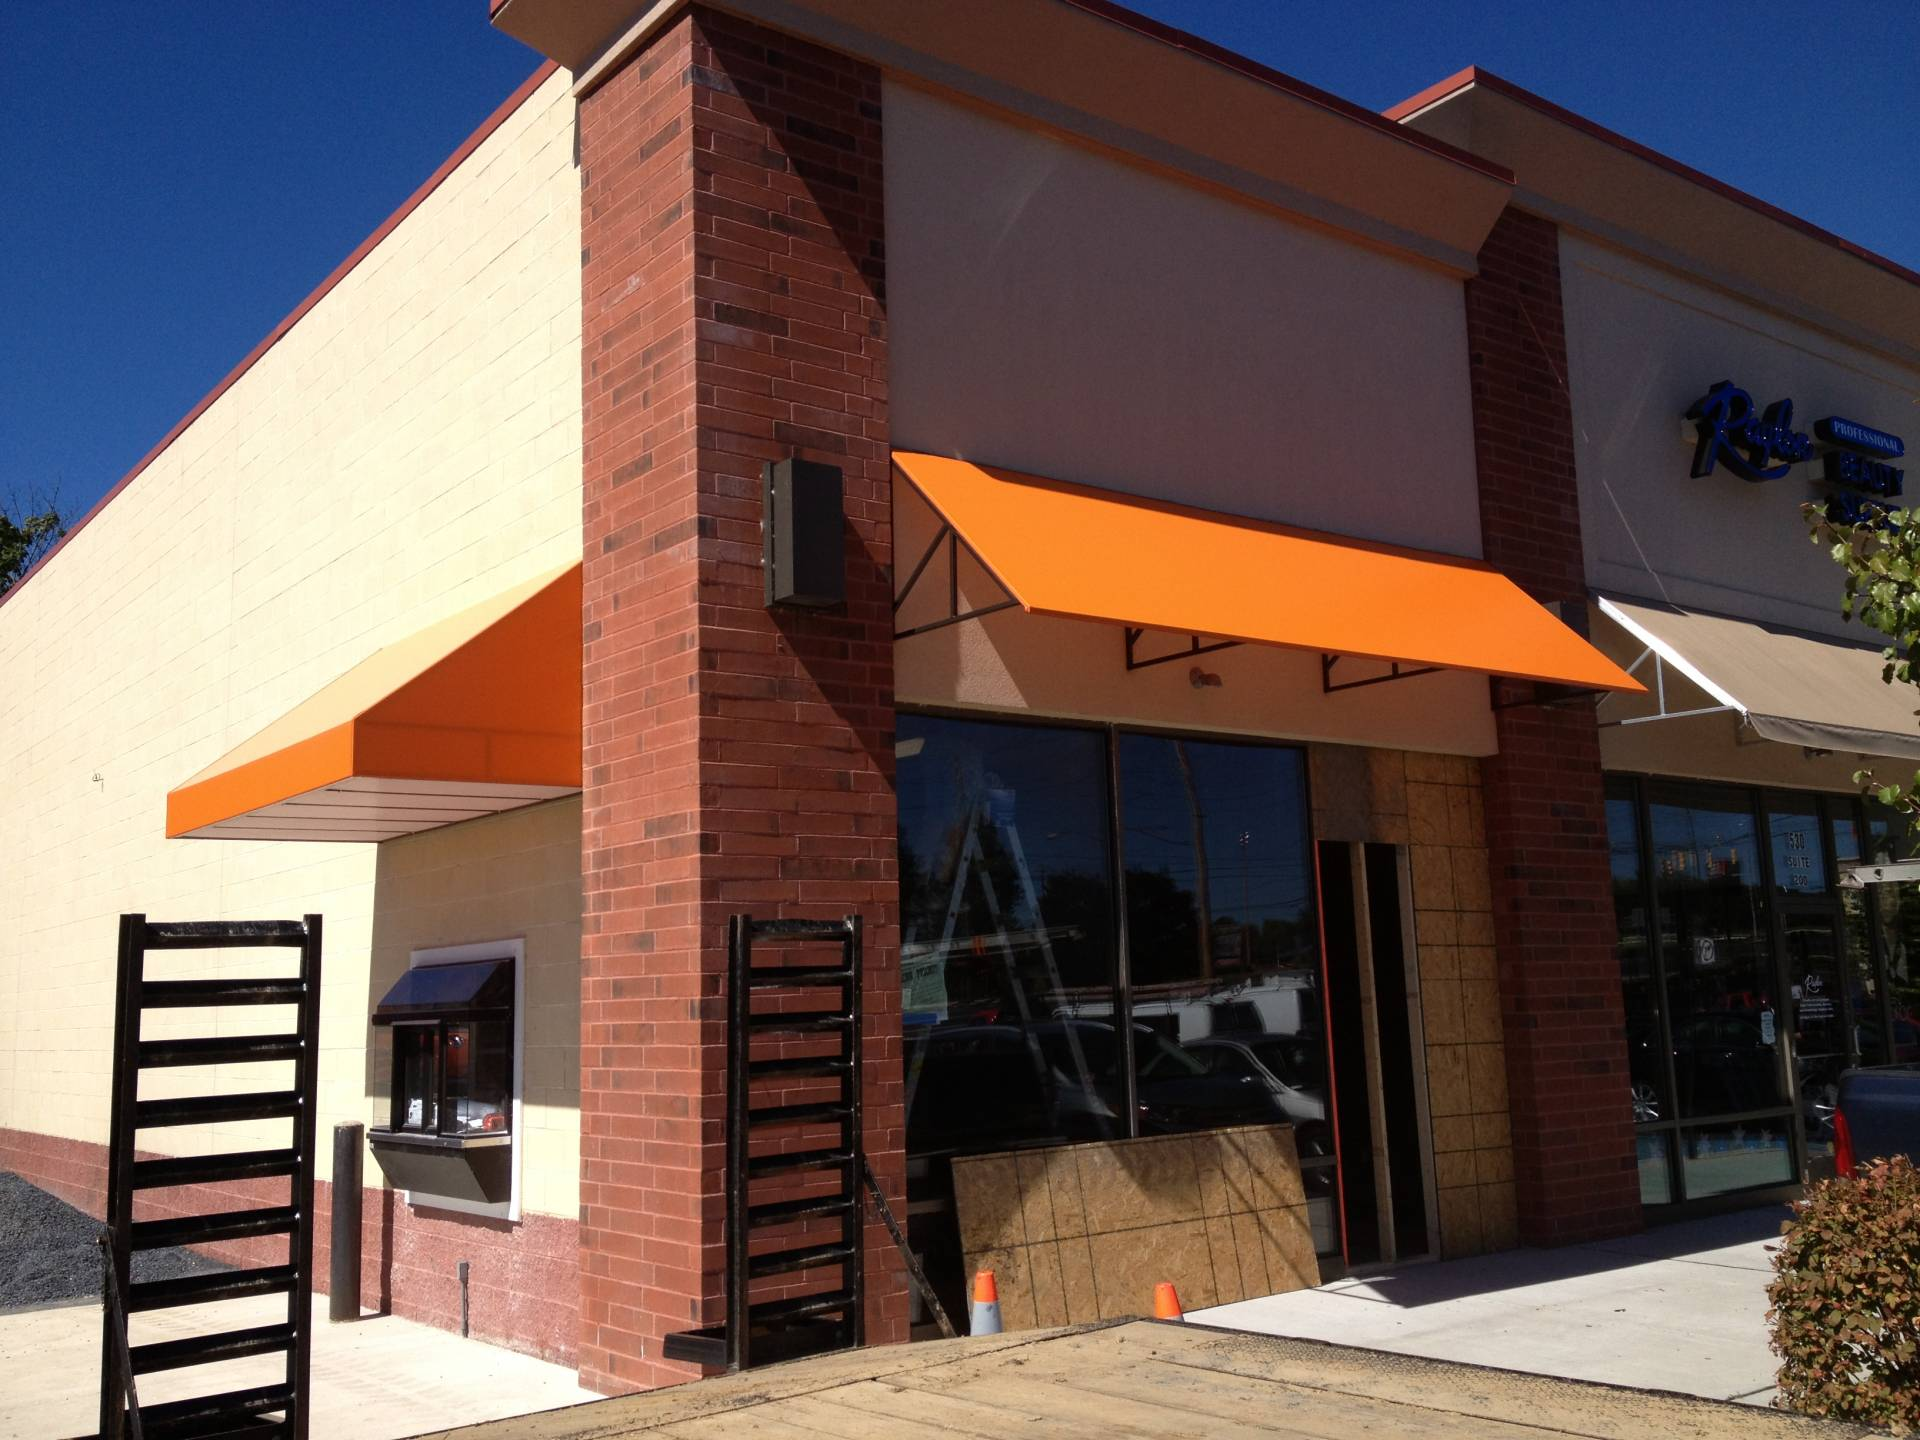 industry of commonly used building awning any for european most types business auto type awnings in signs